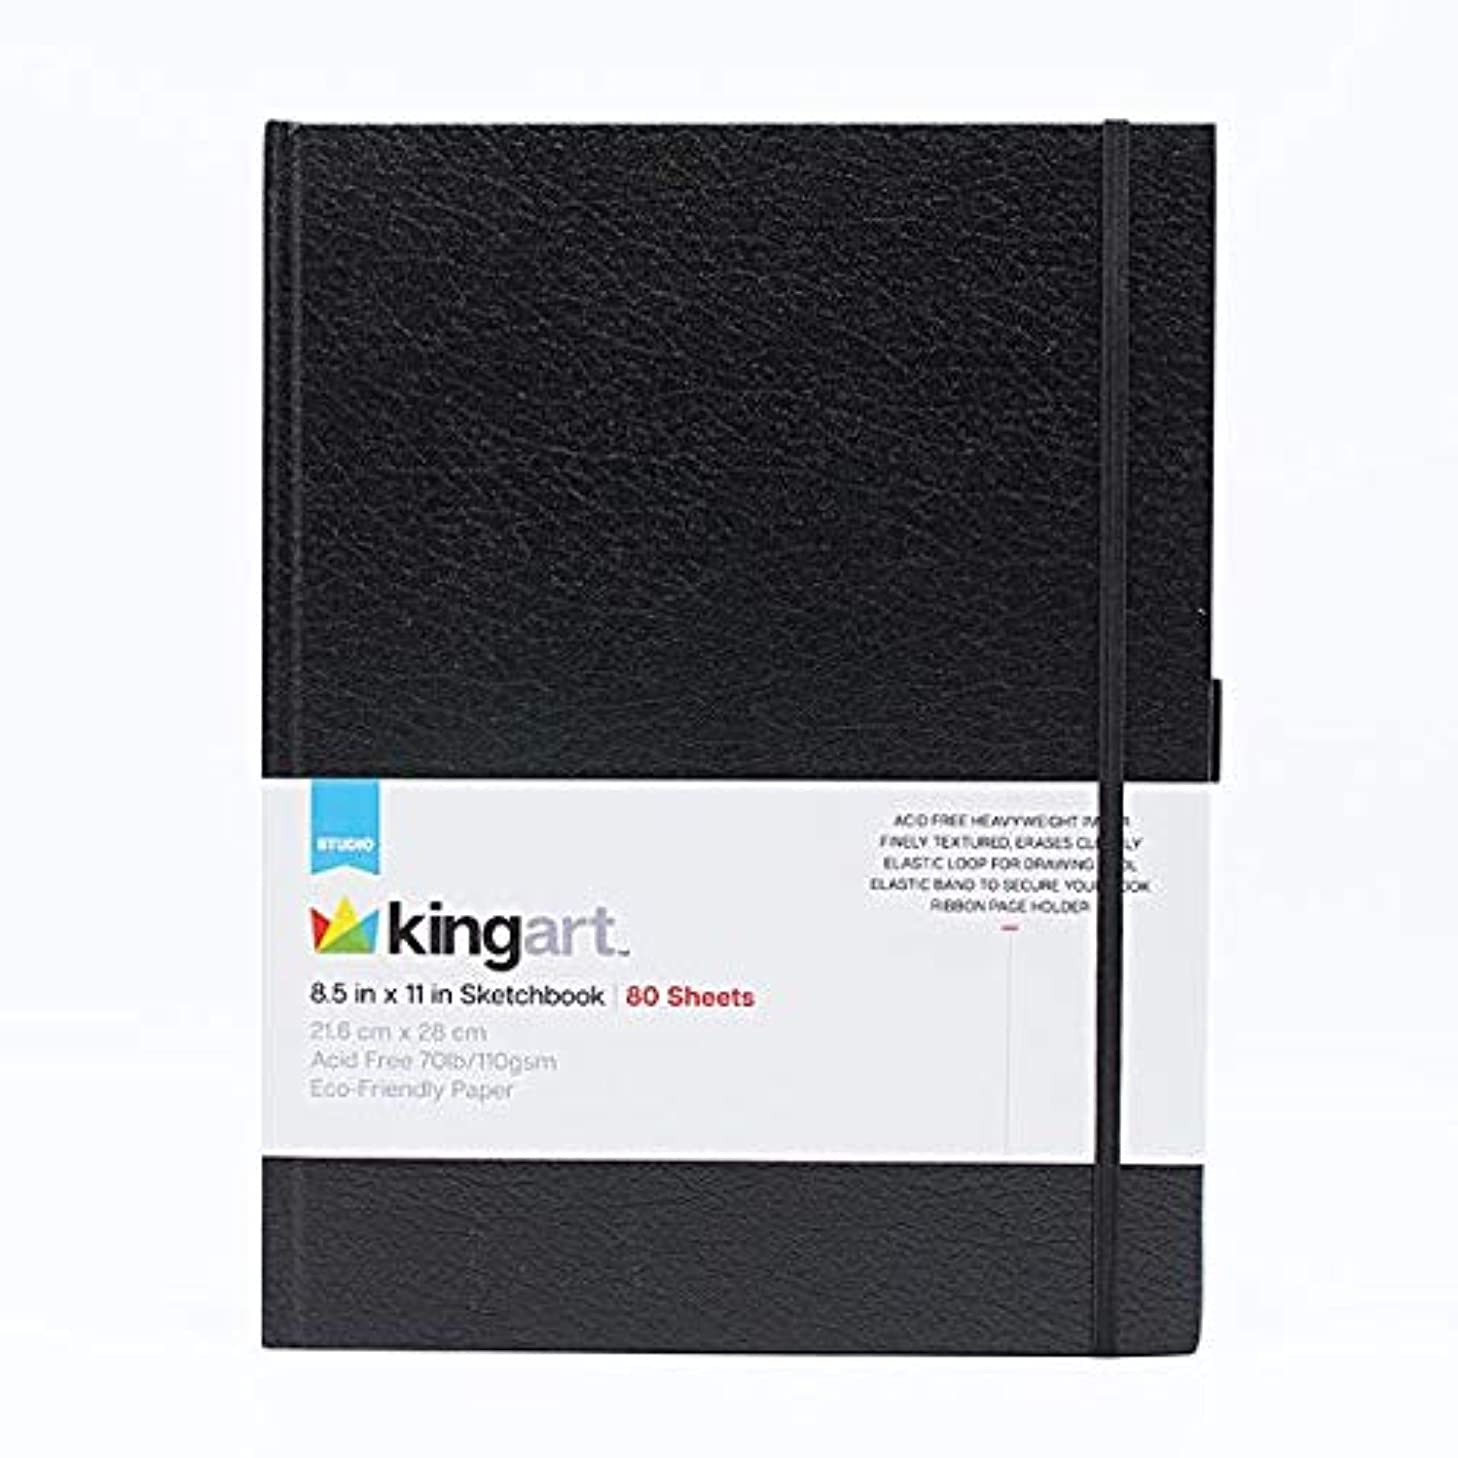 KINGART 625 Hardcover Sketchbook (Black), 70 Lbs. (110G), 8.5